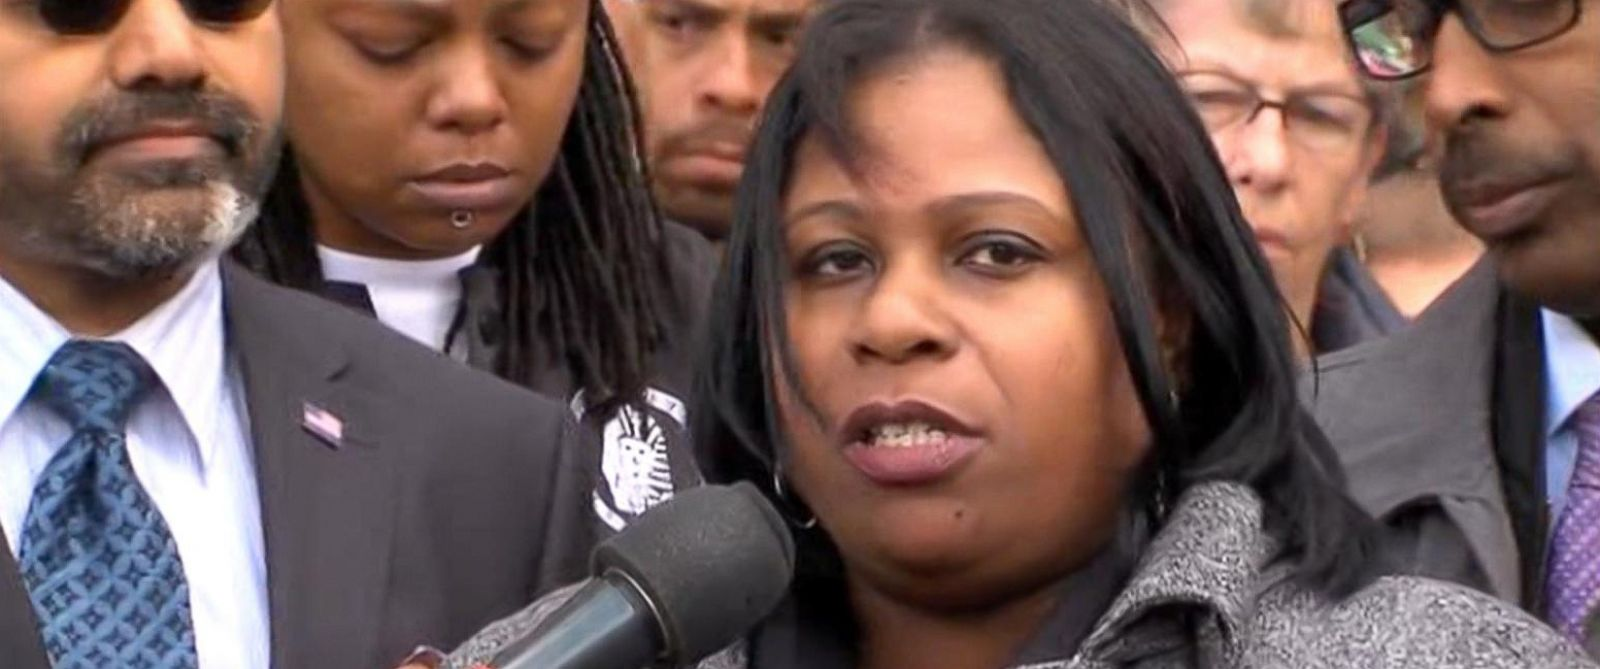 PHOTO: Samaria Rice speaks at a press conference, Oct. 16, 2015.